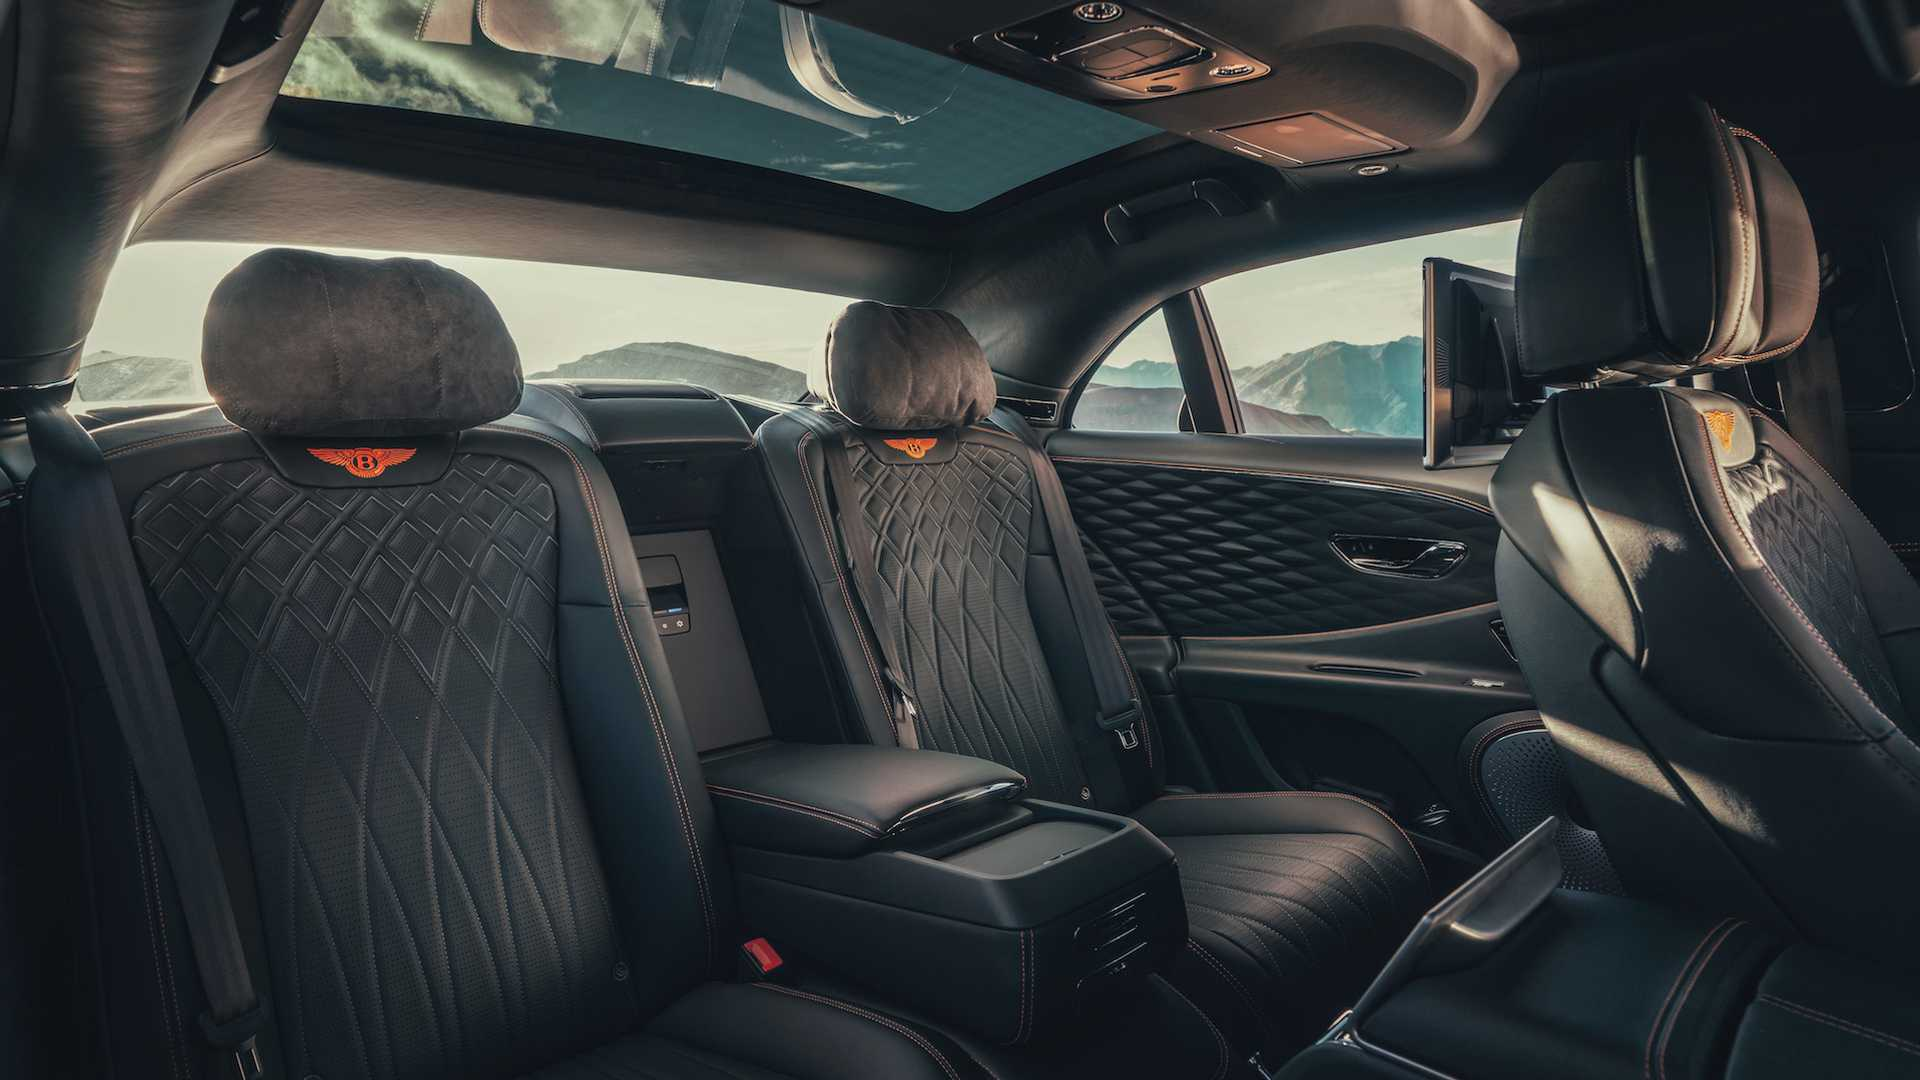 Bentley Flying Spur rear seat options are virtually infinite